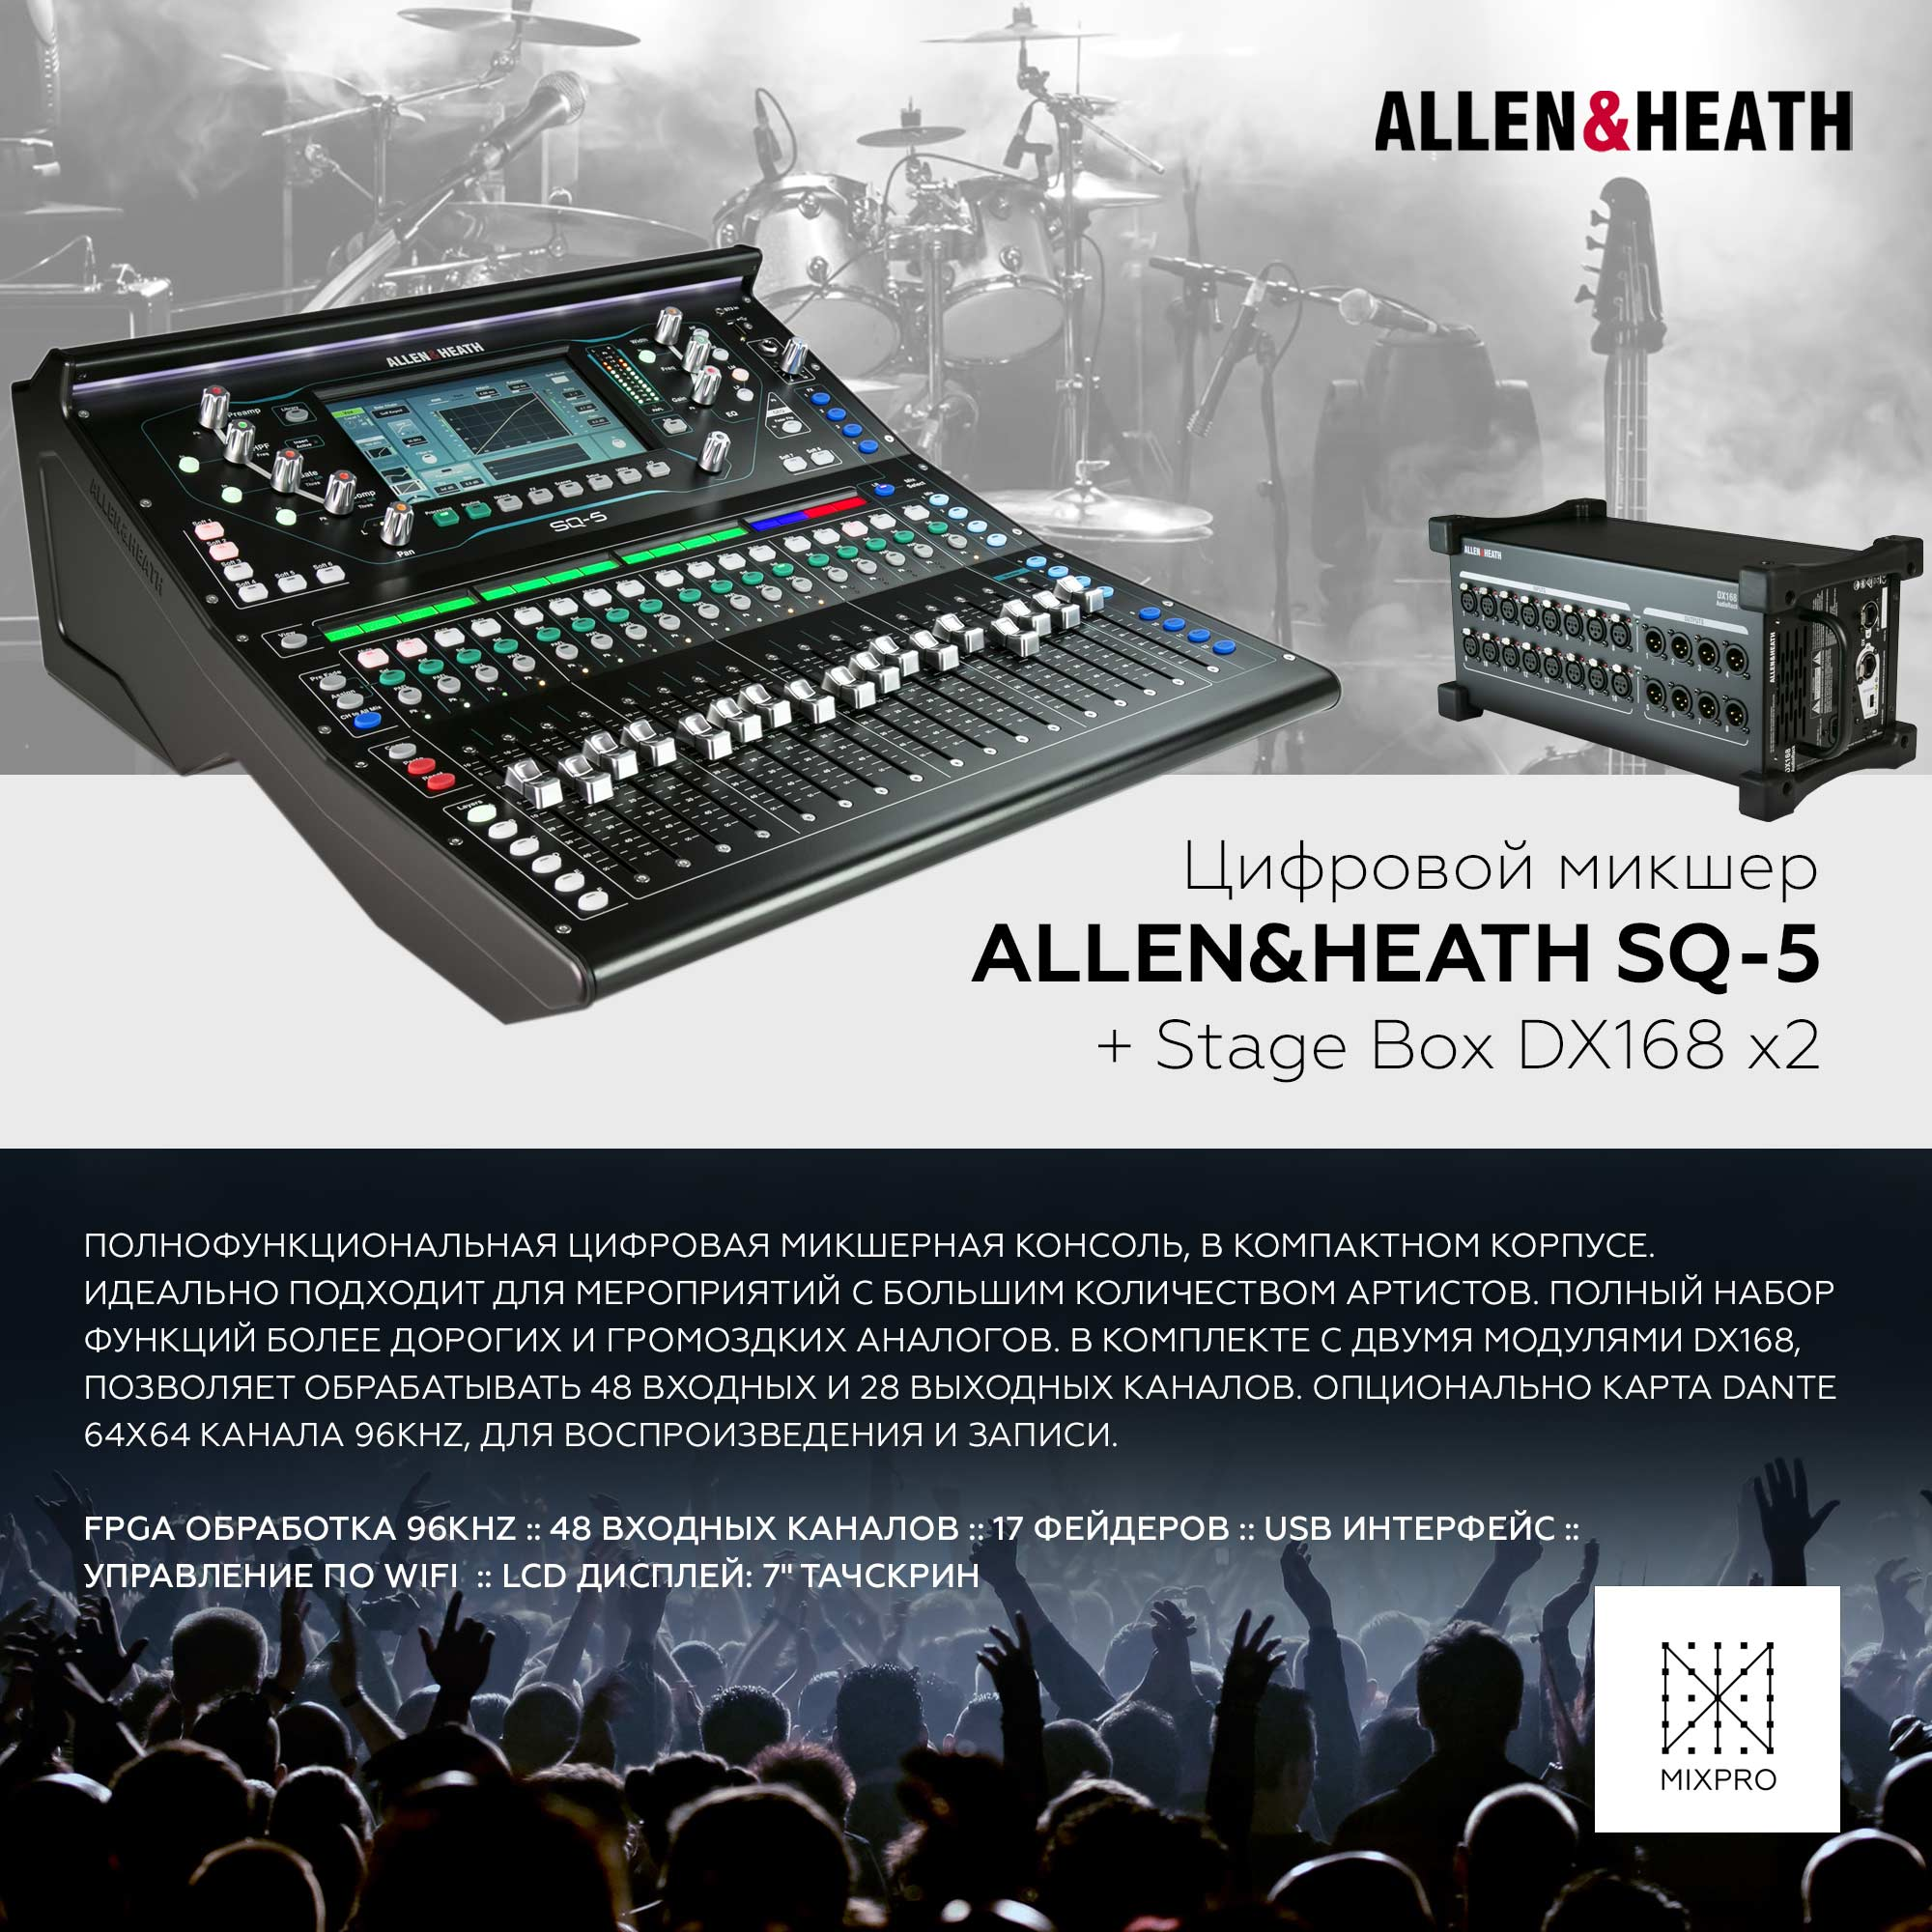 Allen&Heath SQ-5 + DX168 х2